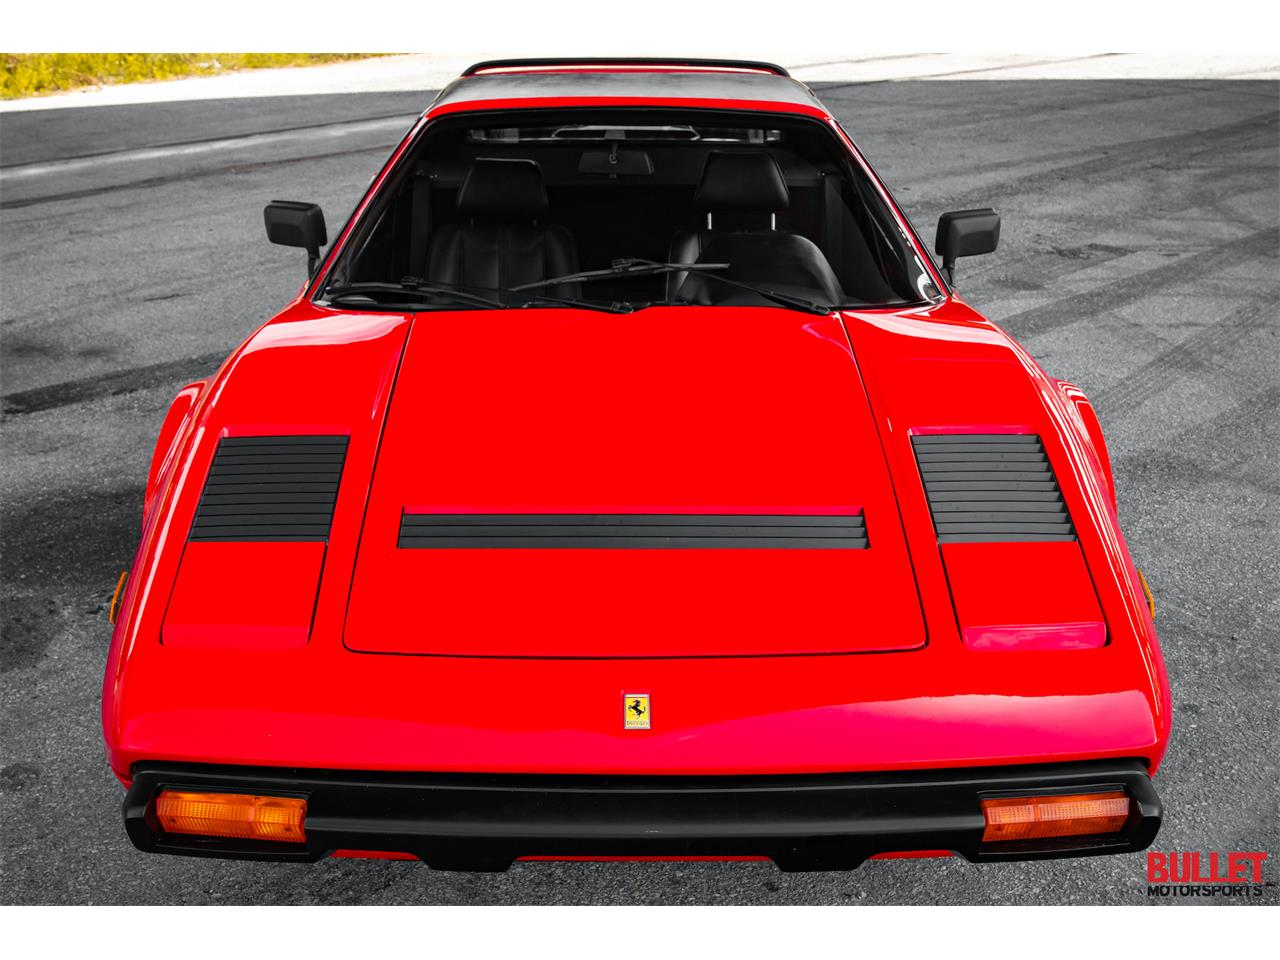 Large Picture of 1985 Ferrari 308 GTS located in Florida - $60,000.00 - QJ3G